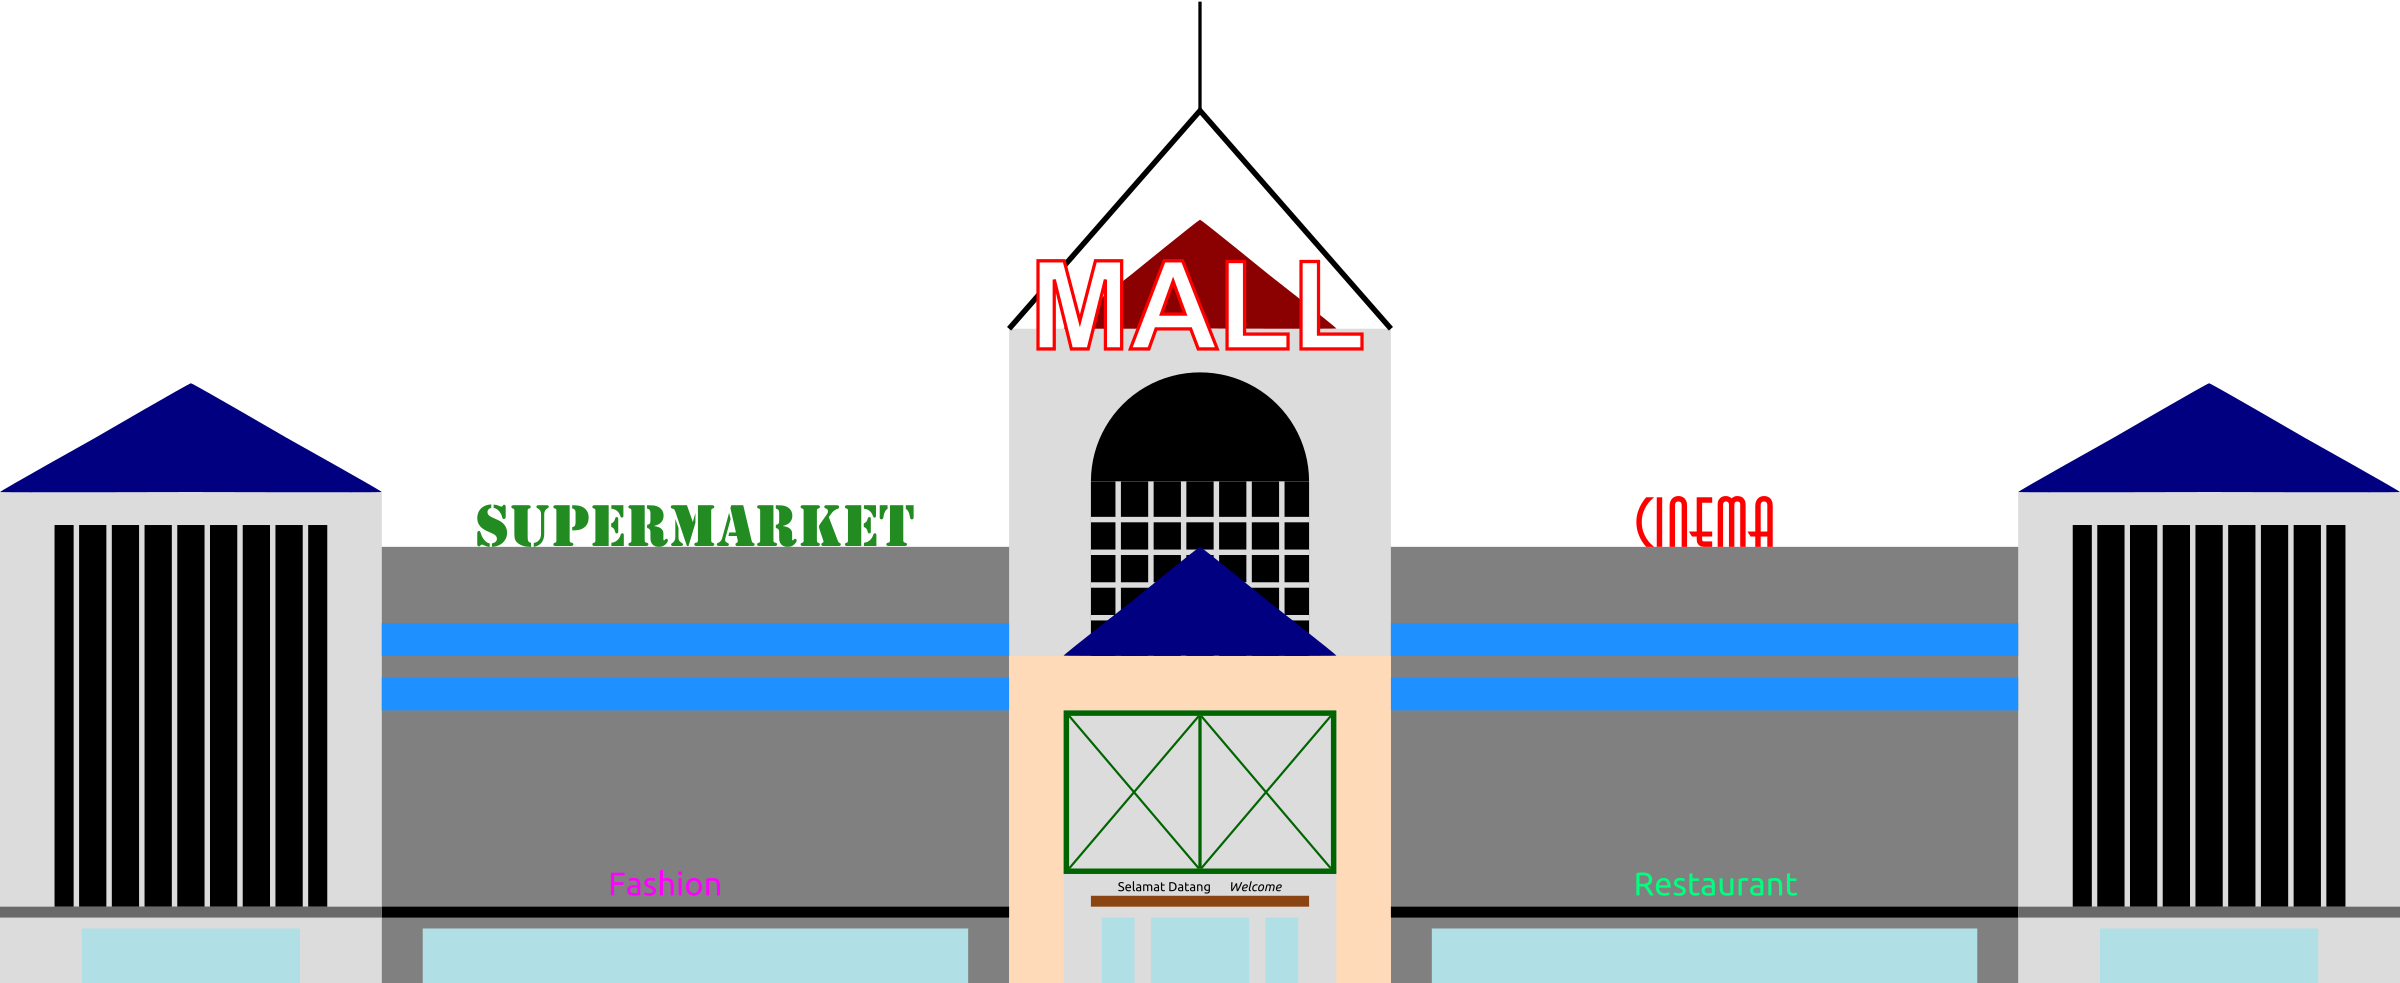 clipart free Mall clipart. Big image png.